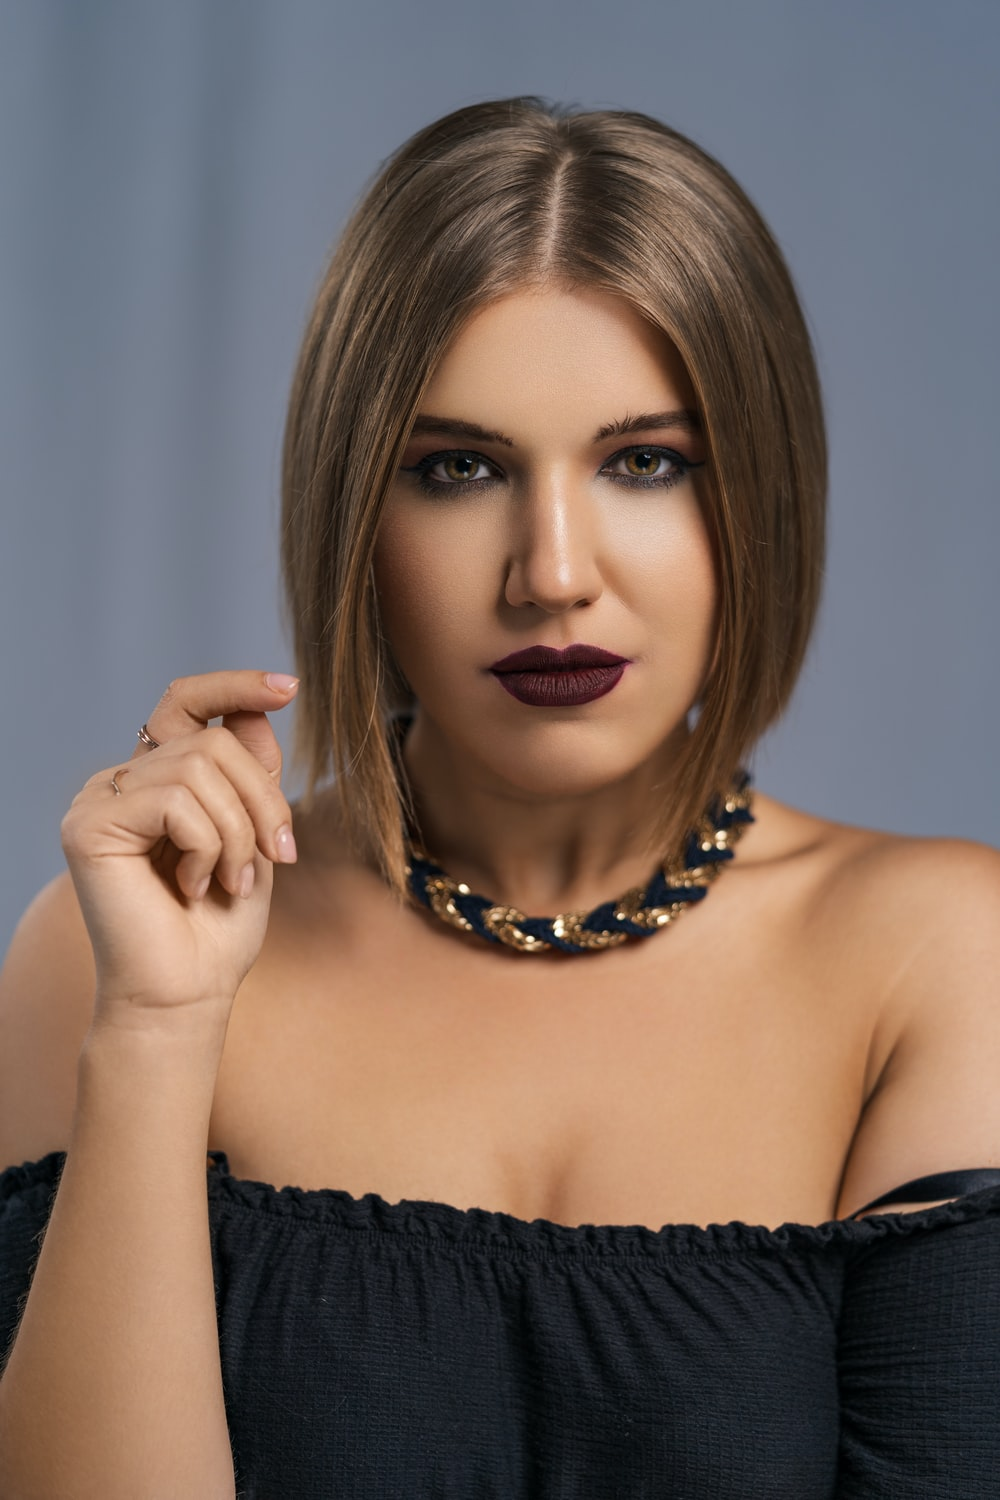 woman in black tube top wearing black beaded necklace